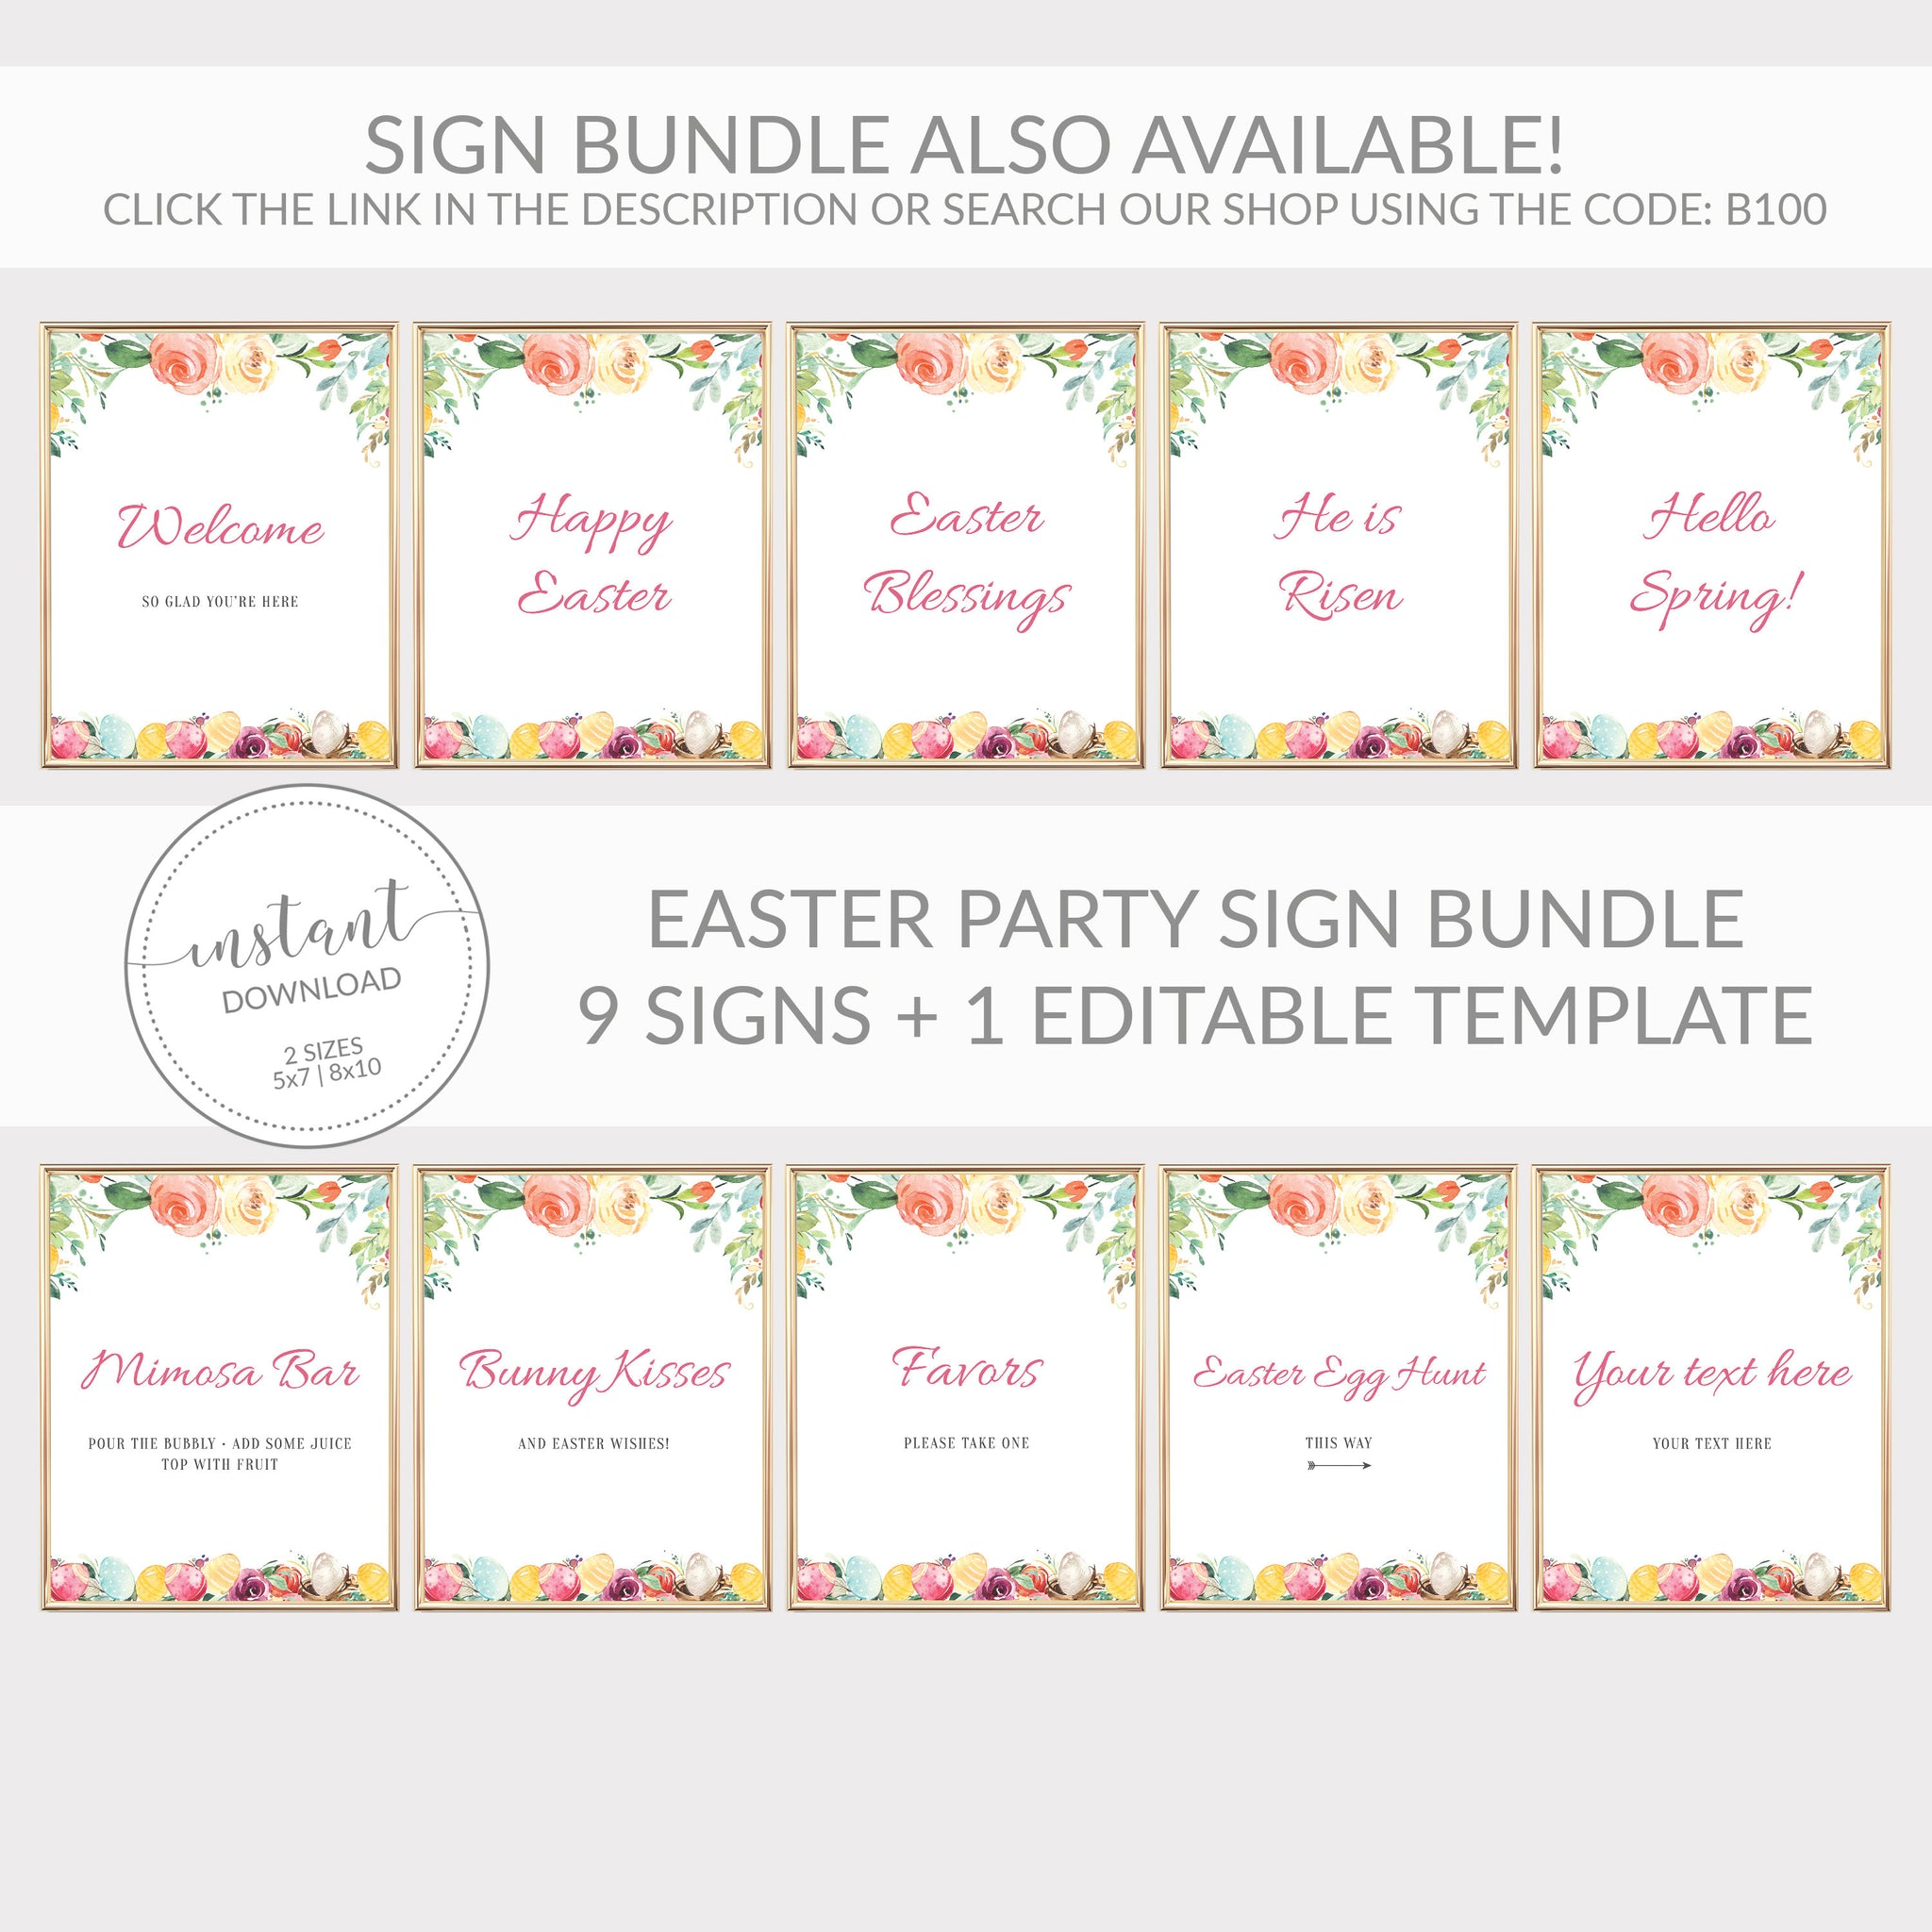 Easter Sanitize Before Entering Sign Printable, Printable Easter Welcome Sign, Easter Party Decorations and Supplies, DIGITAL DOWNLOAD B100